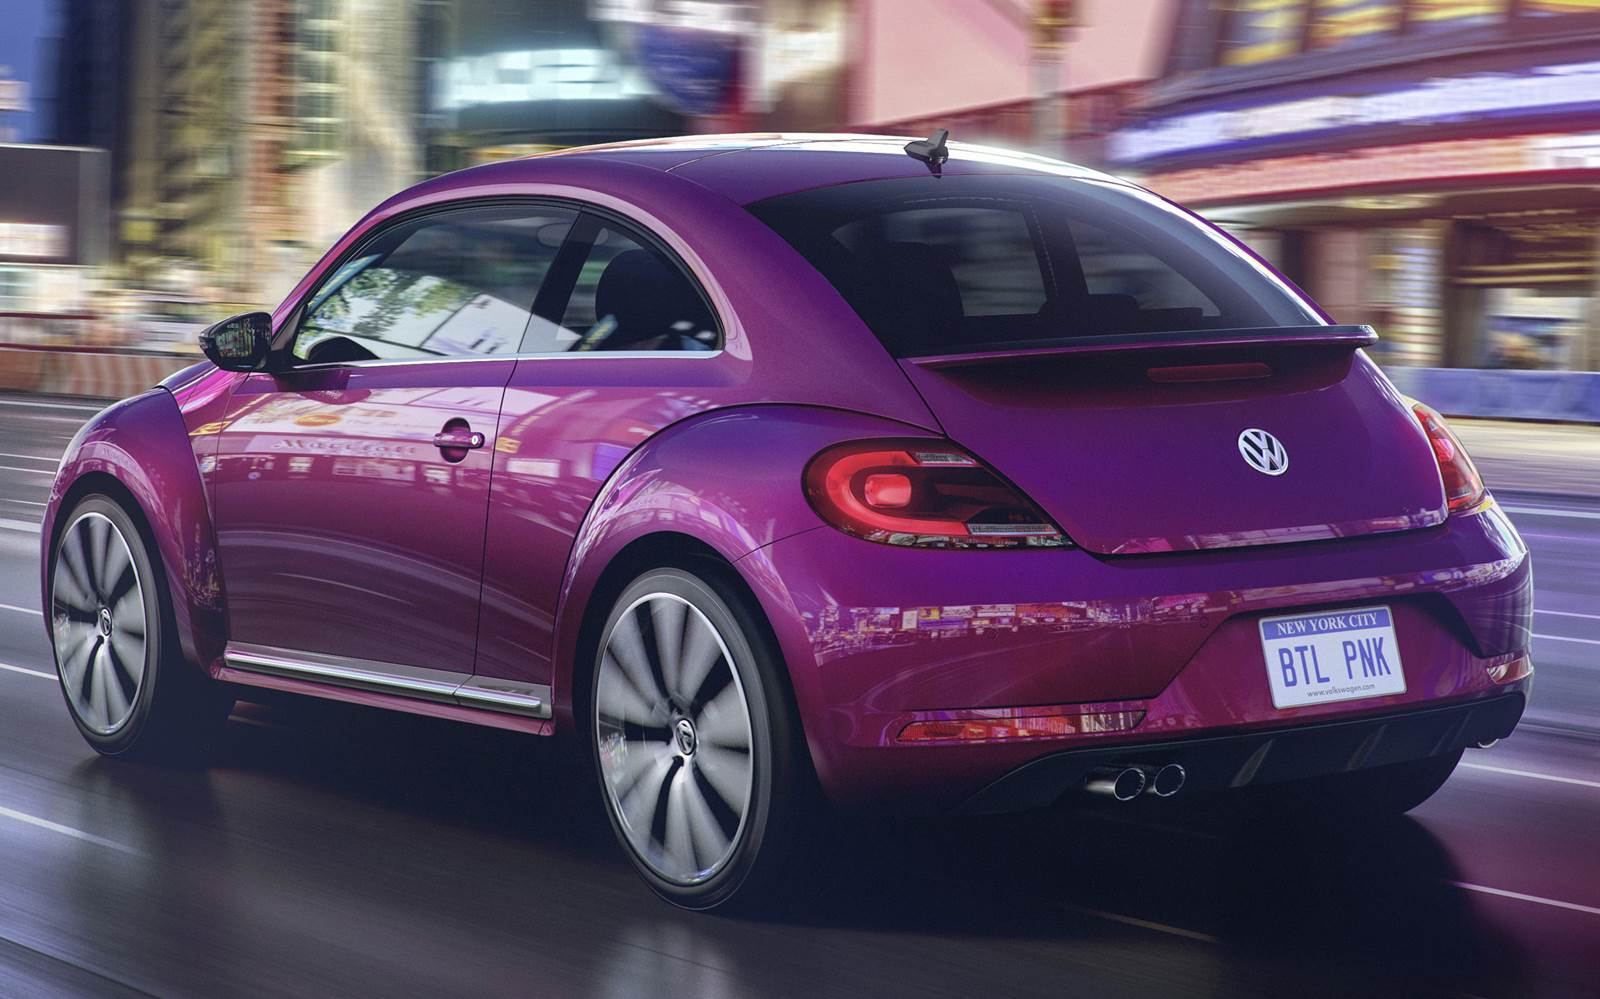 volkswagen apresenta novas vers es do beetle em ny car blog br. Black Bedroom Furniture Sets. Home Design Ideas